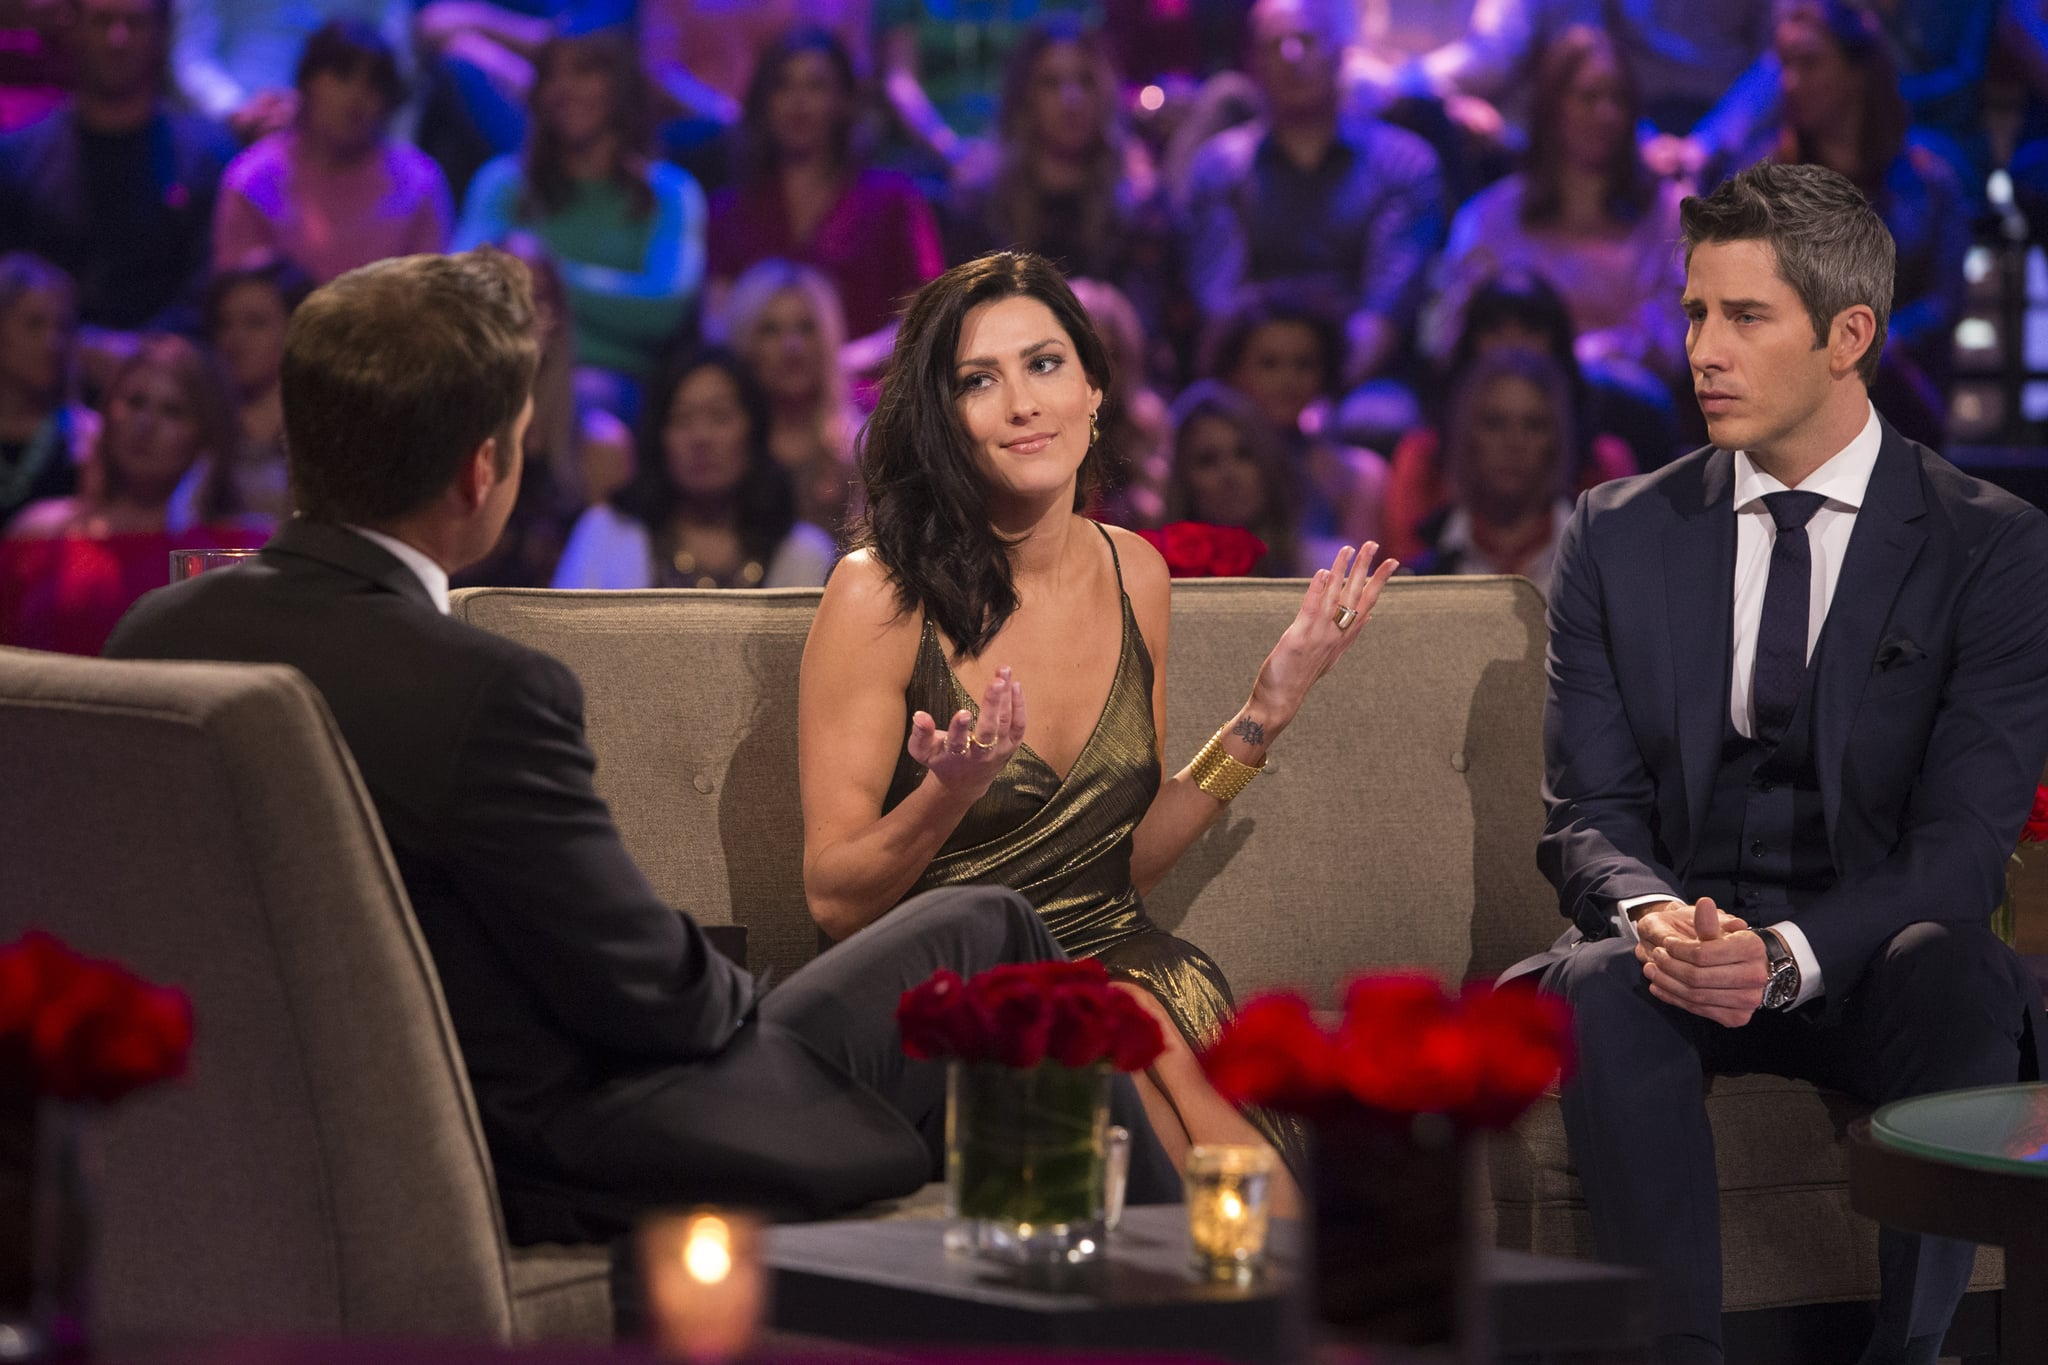 'The Bachelor': Arie & Lauren Reveal They've Considered Eloping After Dramatic Engagement